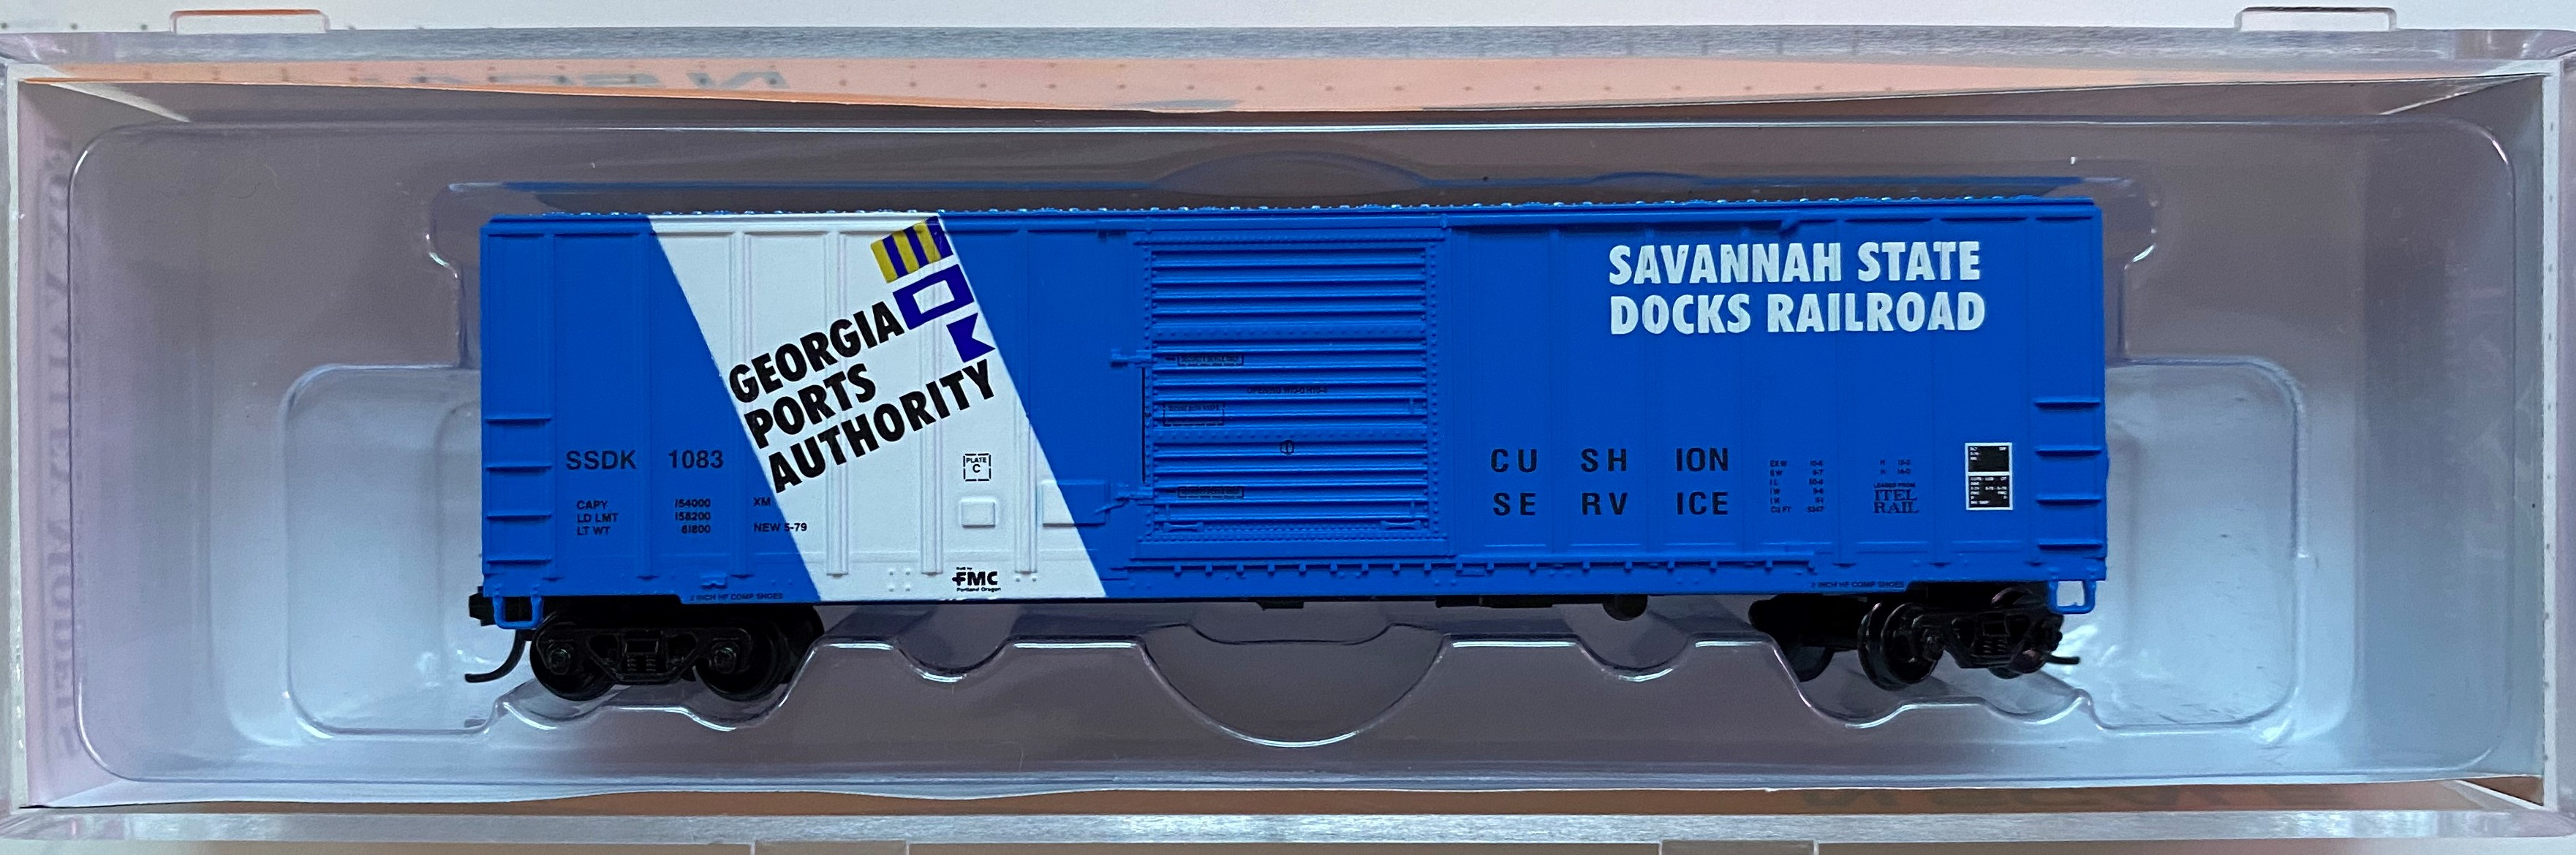 N Scale - Fox Valley - 80096 - Boxcar, 50 Foot, FMC, 5347 - Savanah State Docks Railroad - 1083